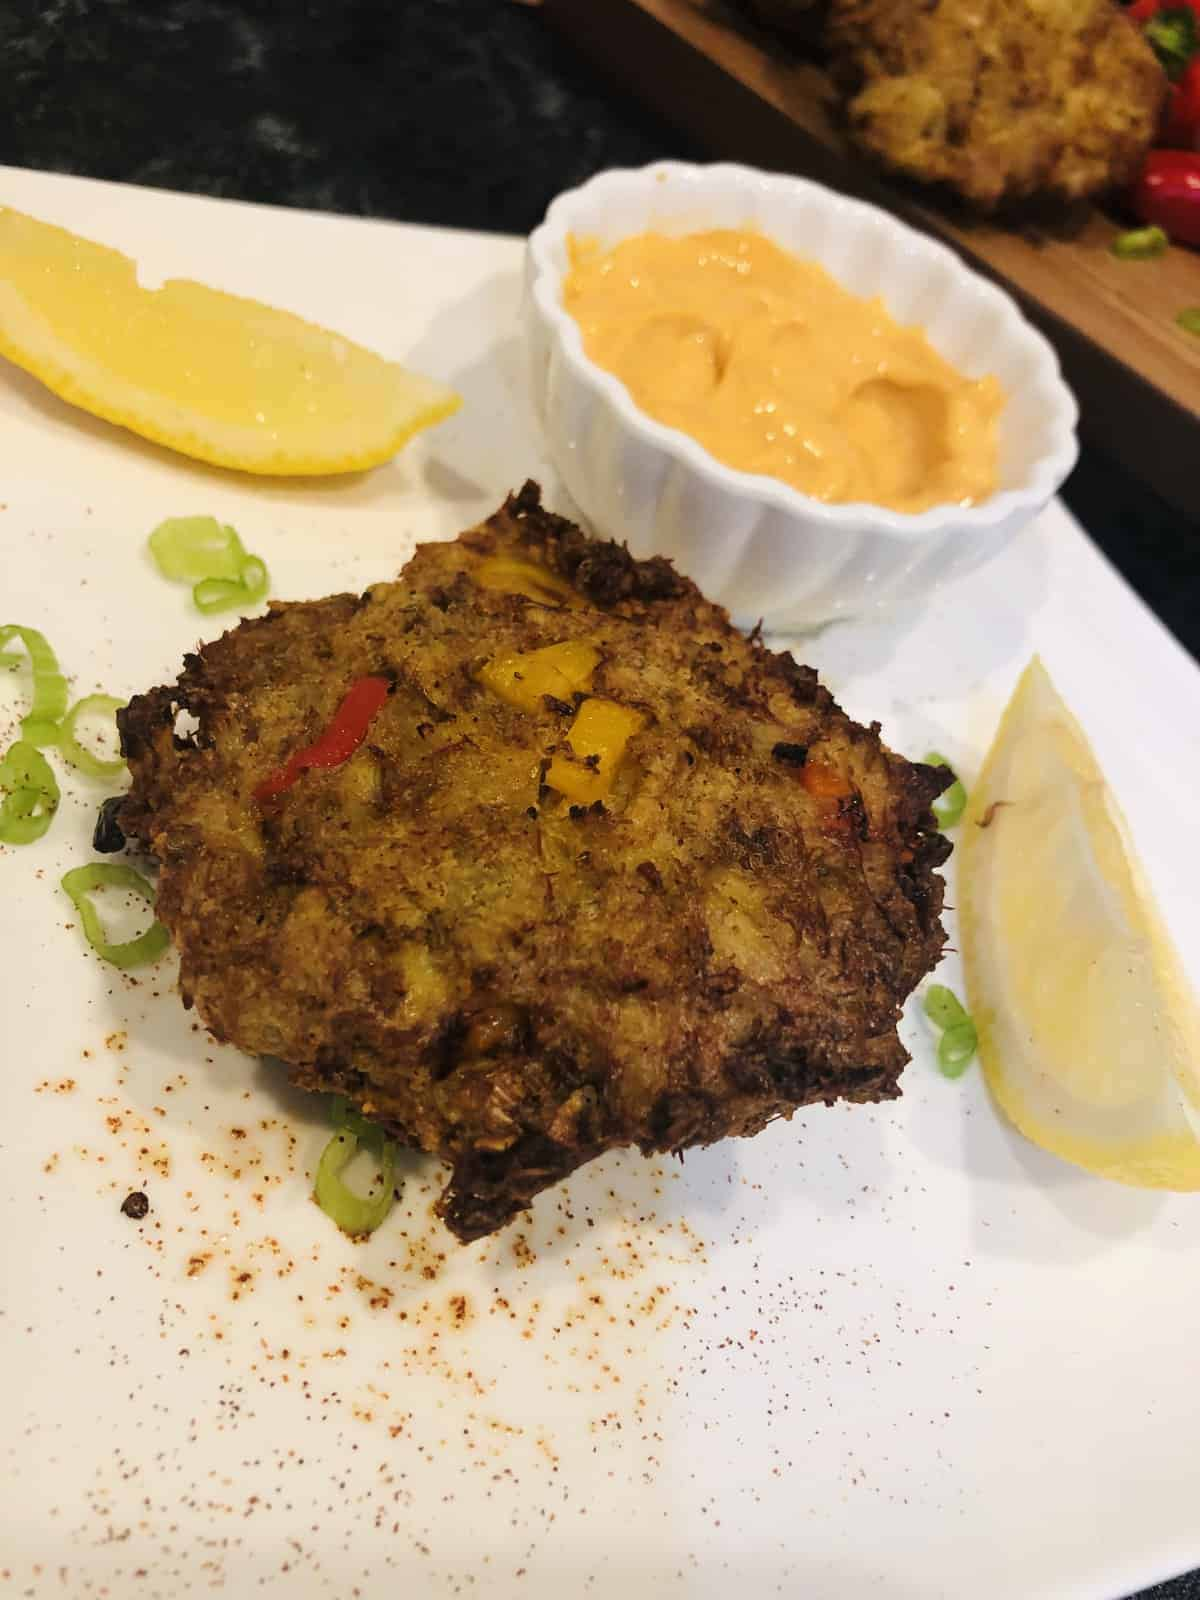 One Air Fried Crab Cake on a white plate with a lemon slice and chives and dip